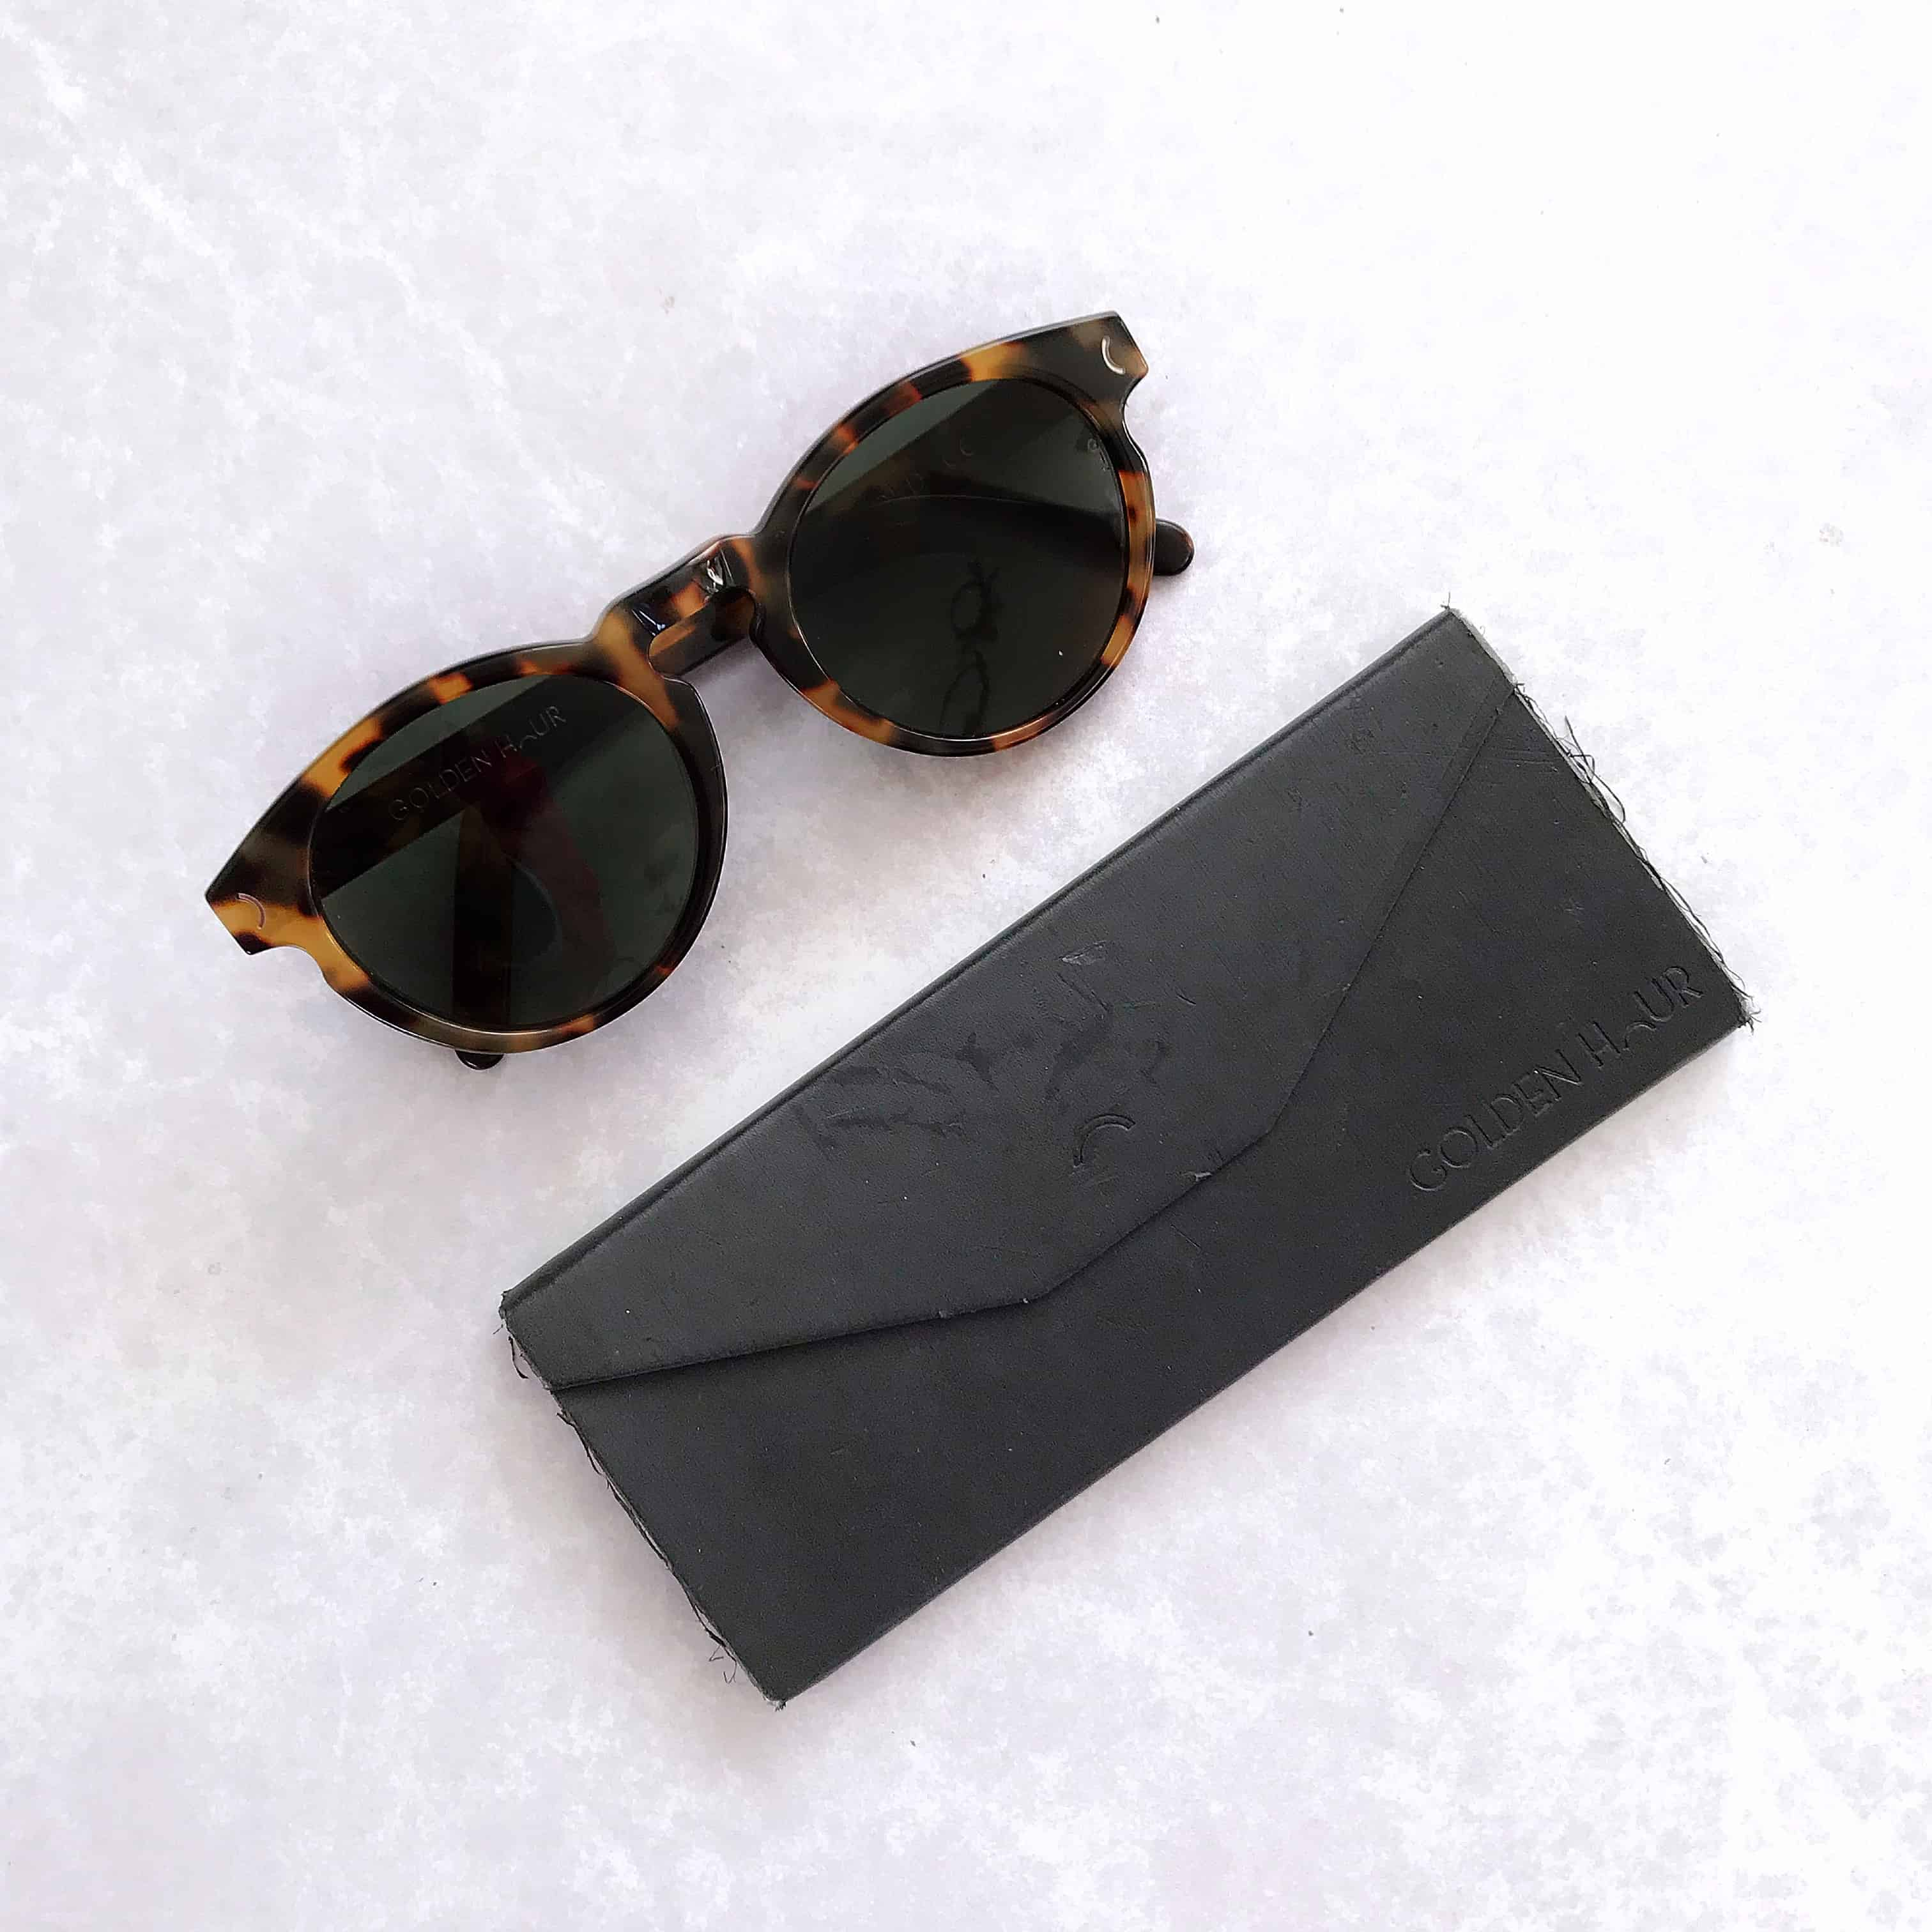 Golden Vision sunglasses with flat pack case to help you travel light